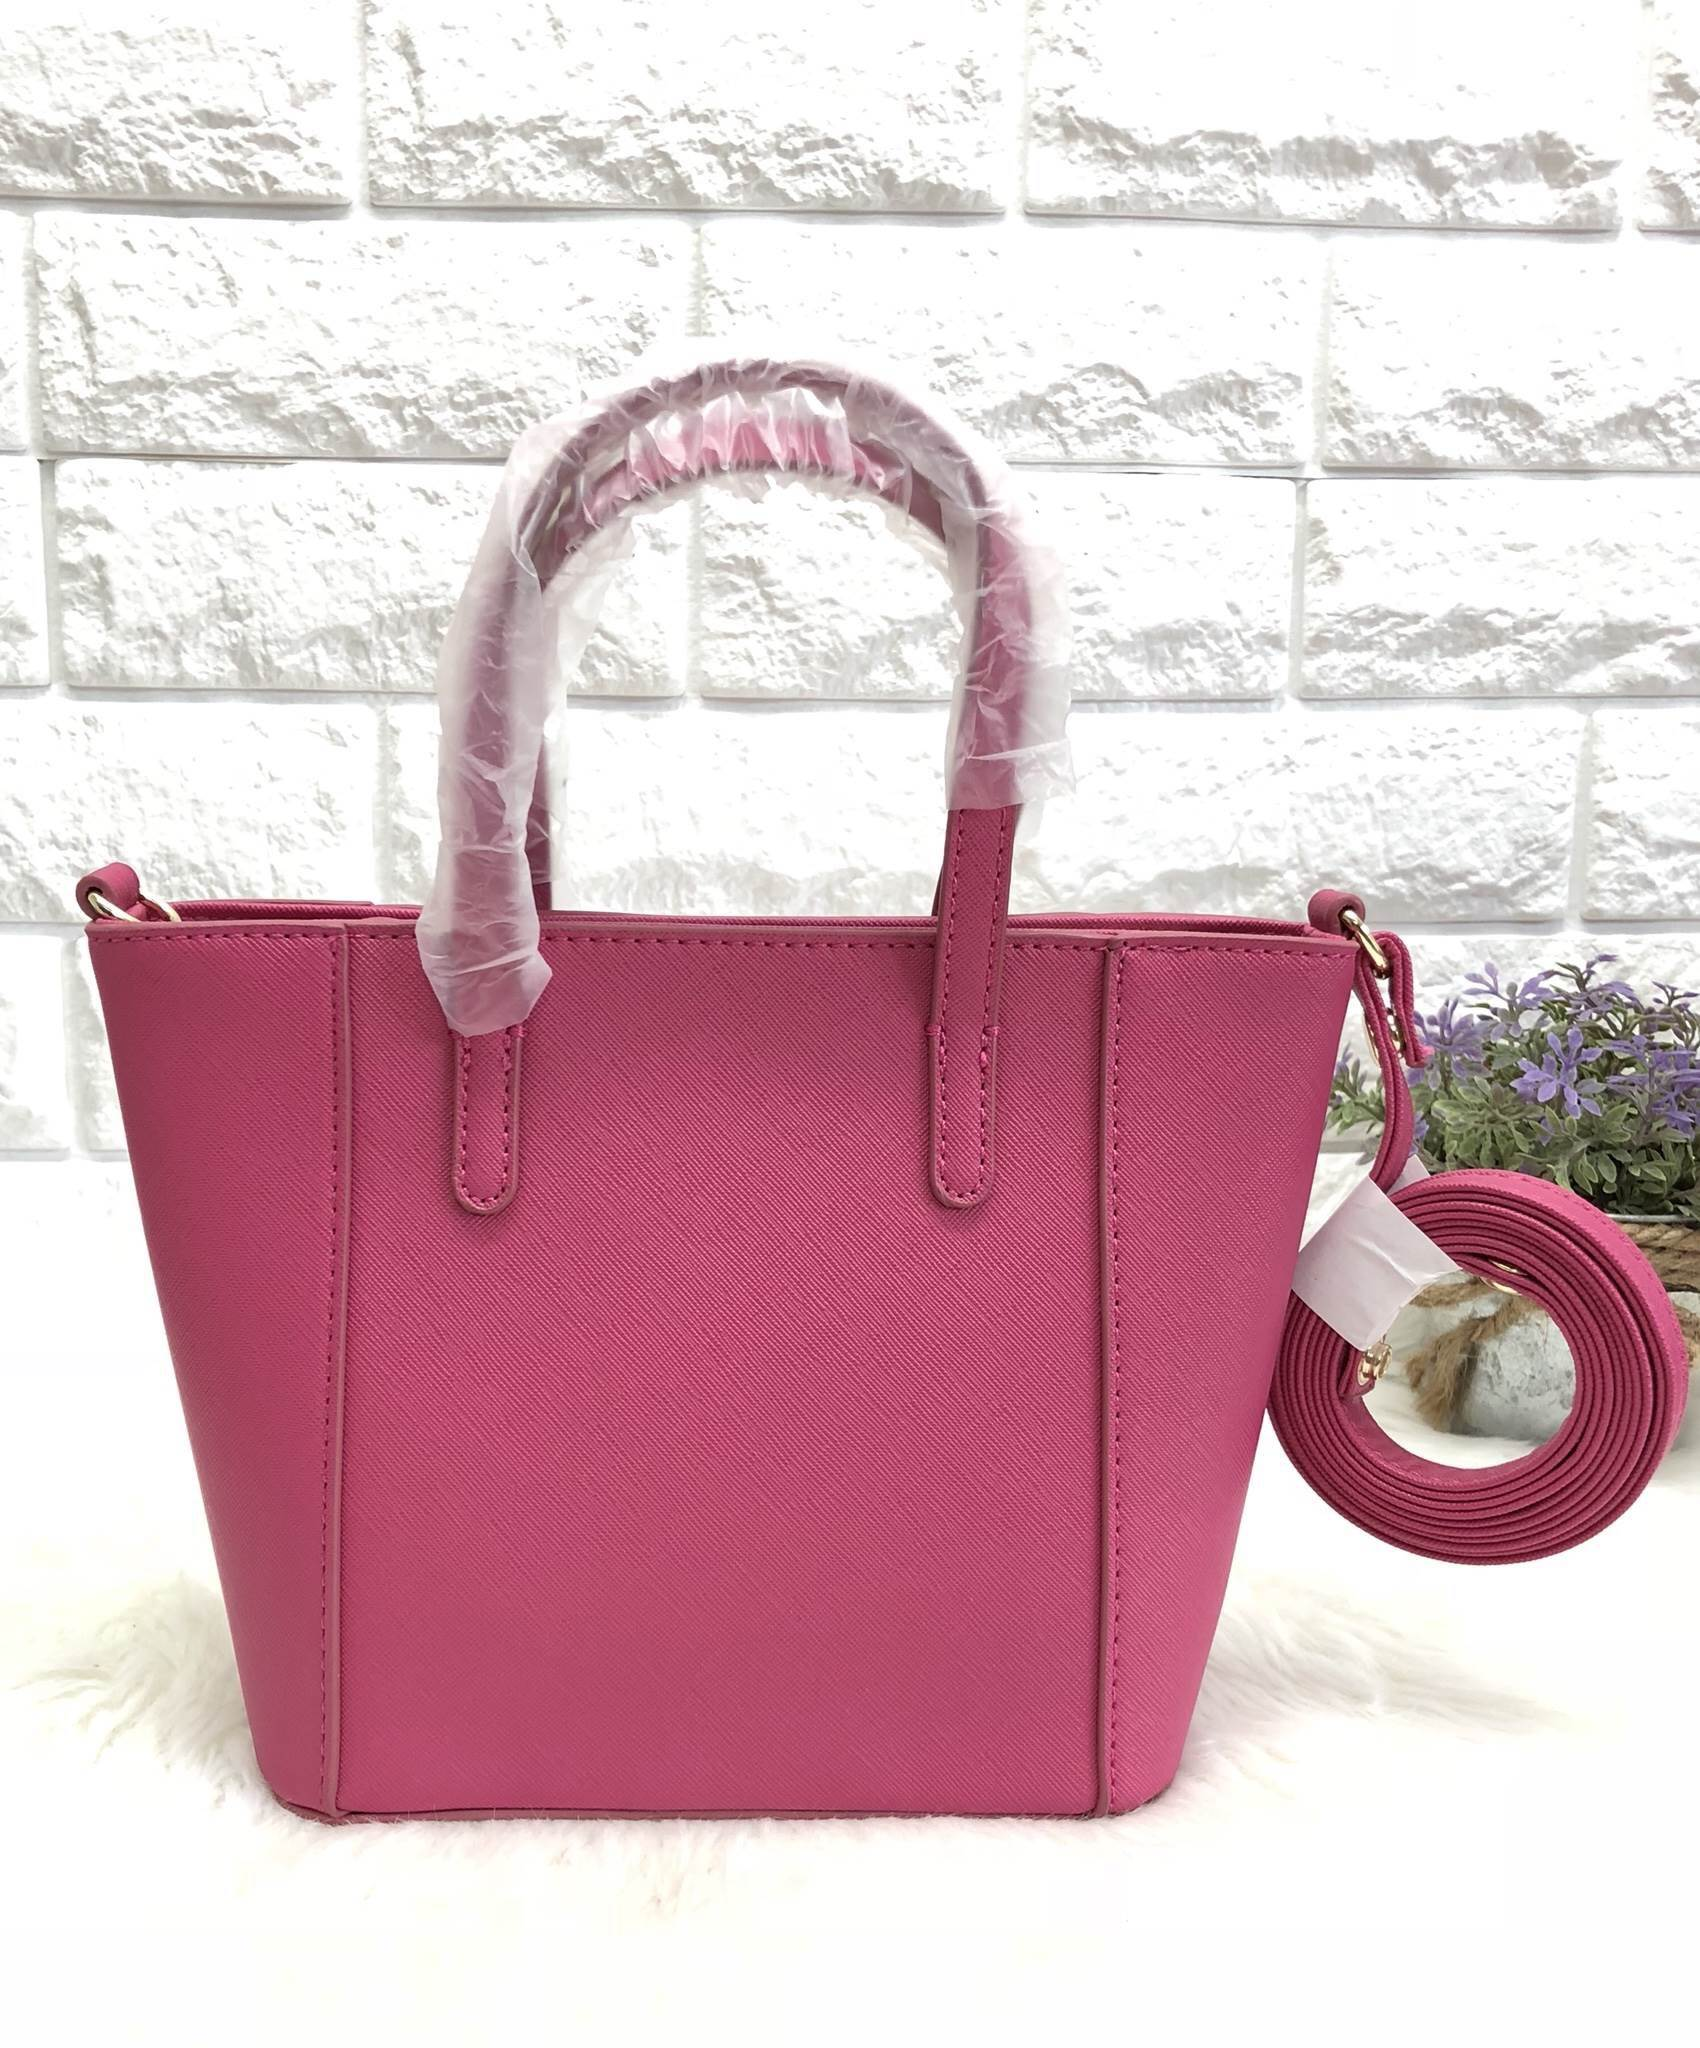 CHARLES & KEITH SAFFIANO BAG *Size S